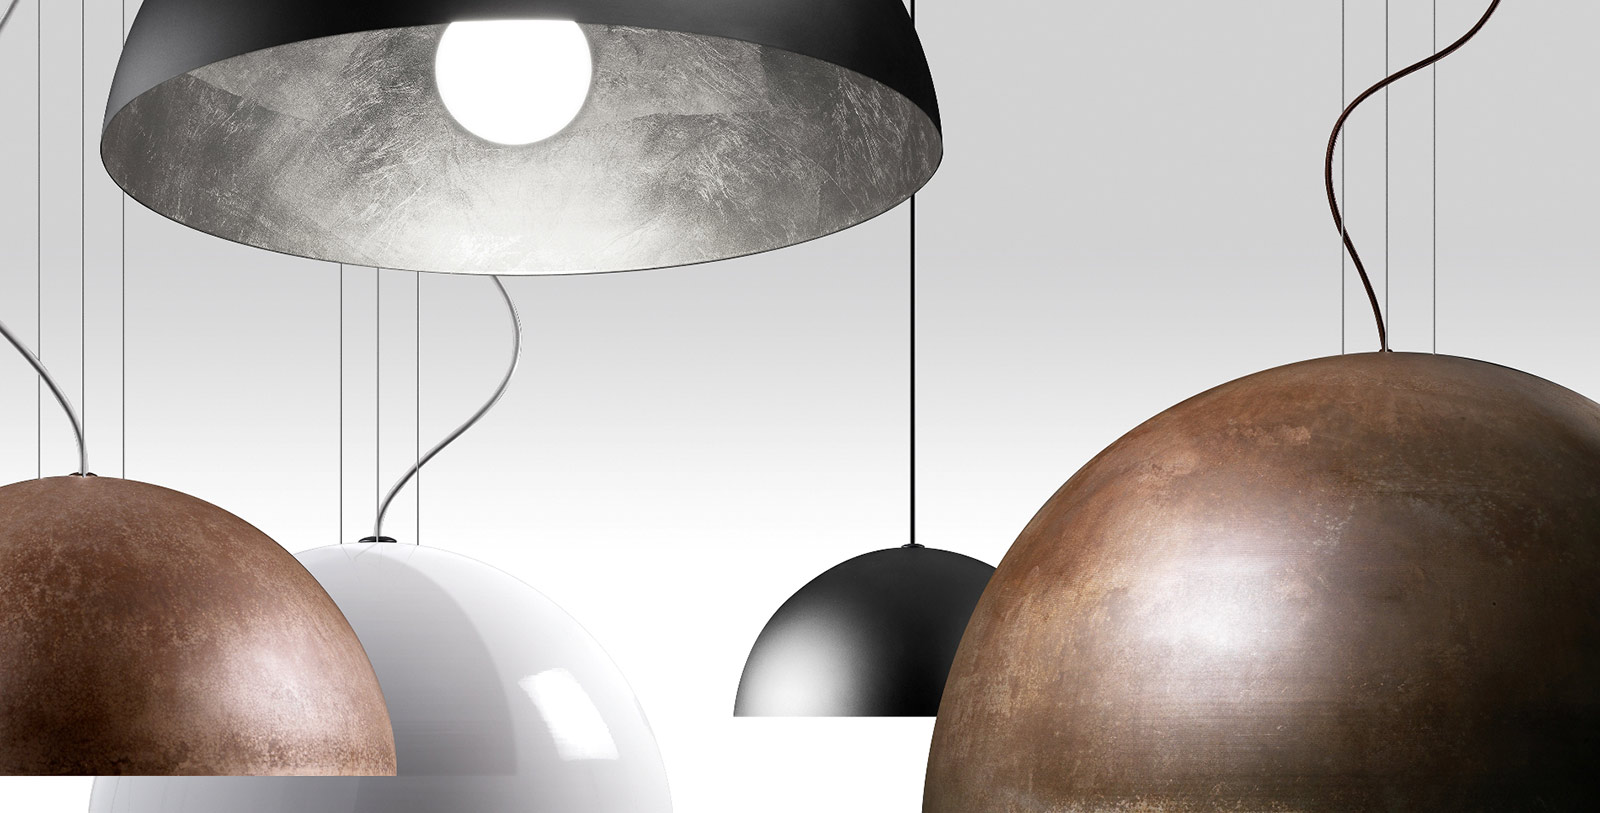 Lampade e lampadari vintage: bellezza senza tempo lighting design